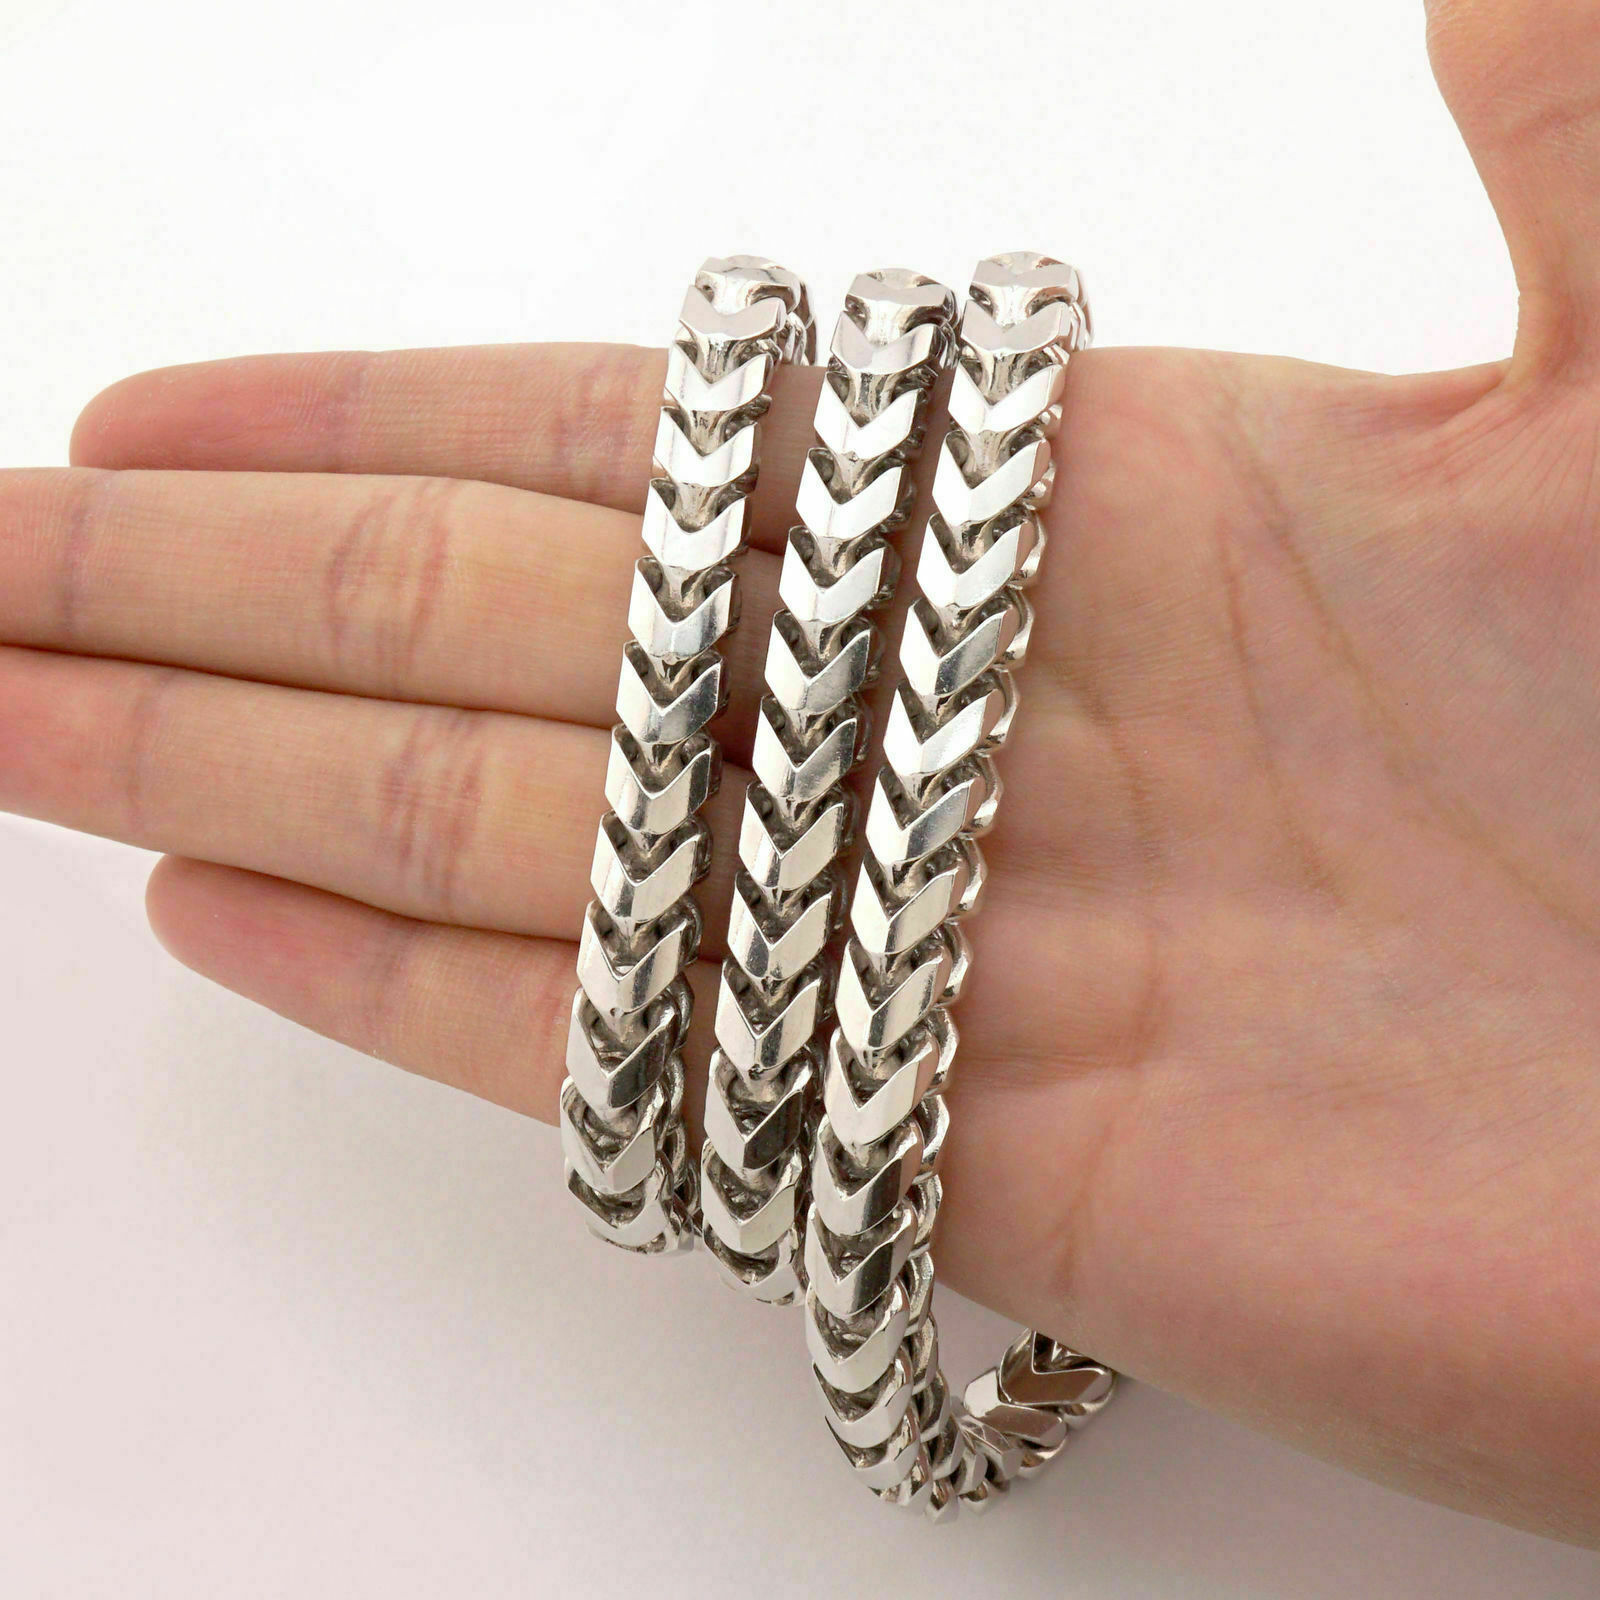 1ee40b26f9ad9 Details about Men's Woman 6mm Franco Foxtail Chain 925 Sterling Silver -  Square - Anti Tarnish